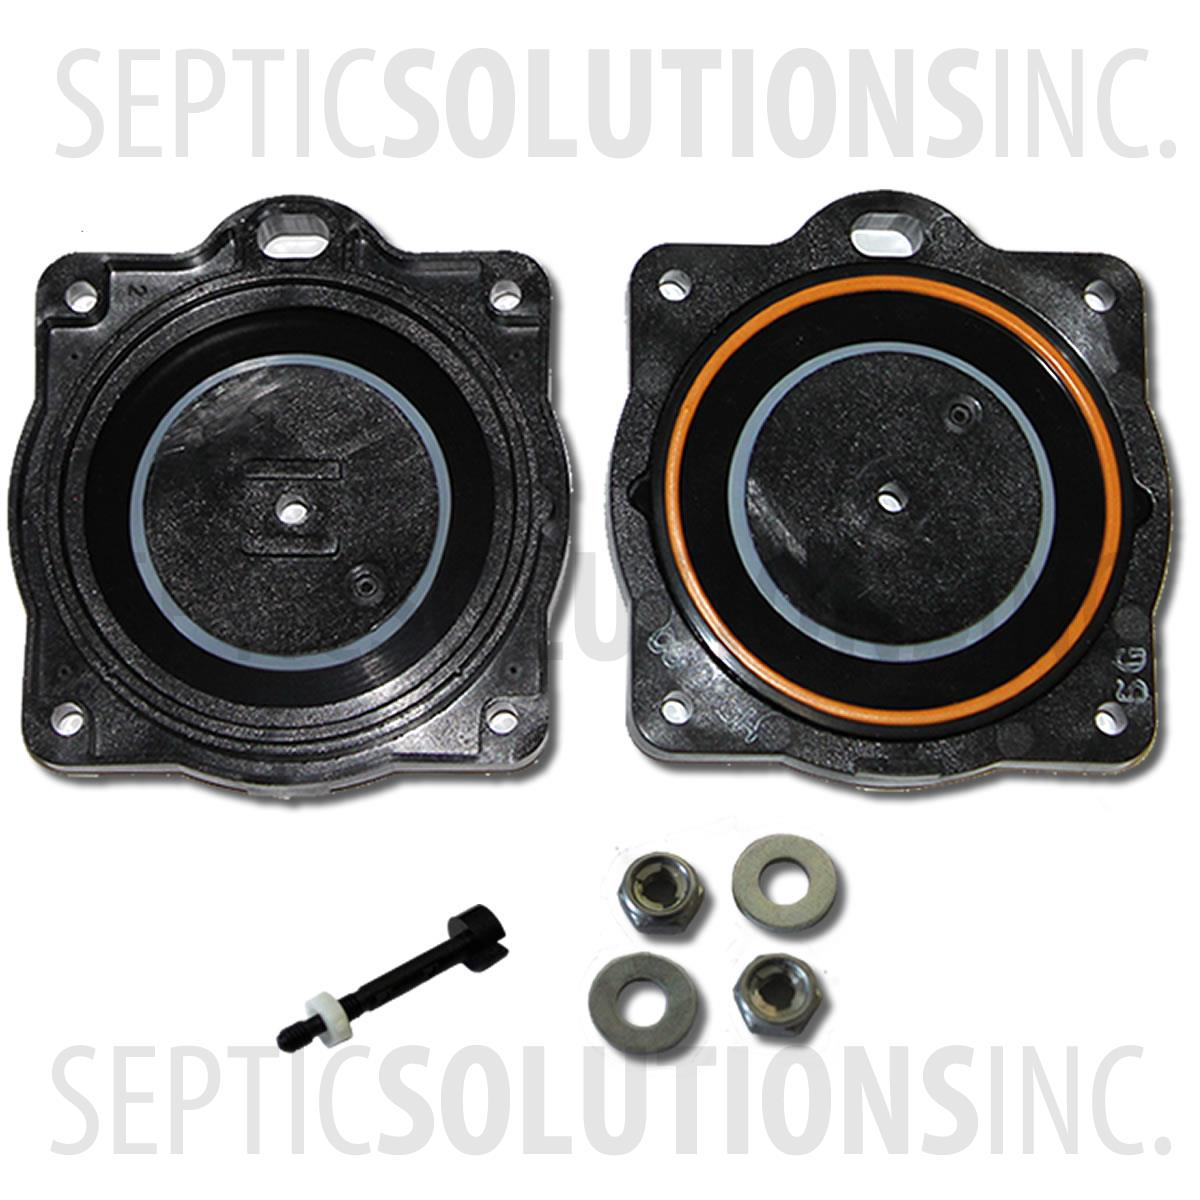 Hiblow Hp 60 80 Diaphragms Only Septic Solutions Septic